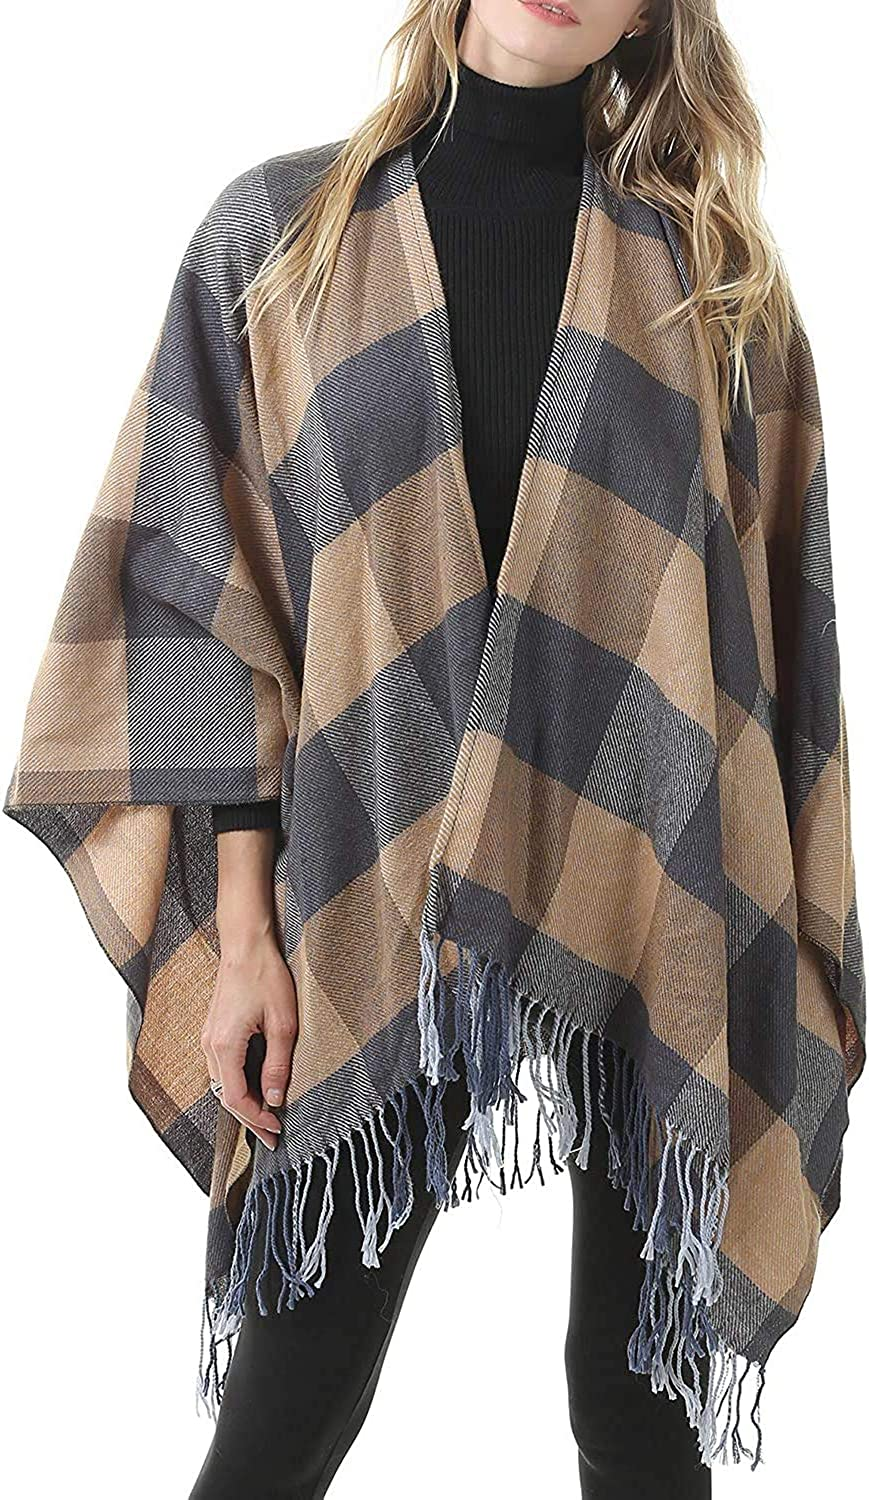 Men'S and Women'S Top Necks Blanket Soft Scarf MKLP Tassel Scarf Winter Ladies Scarf Large Warm Shawl Plaid Scarf Large Shawl Keep Warm and Prevent Cold Shawl